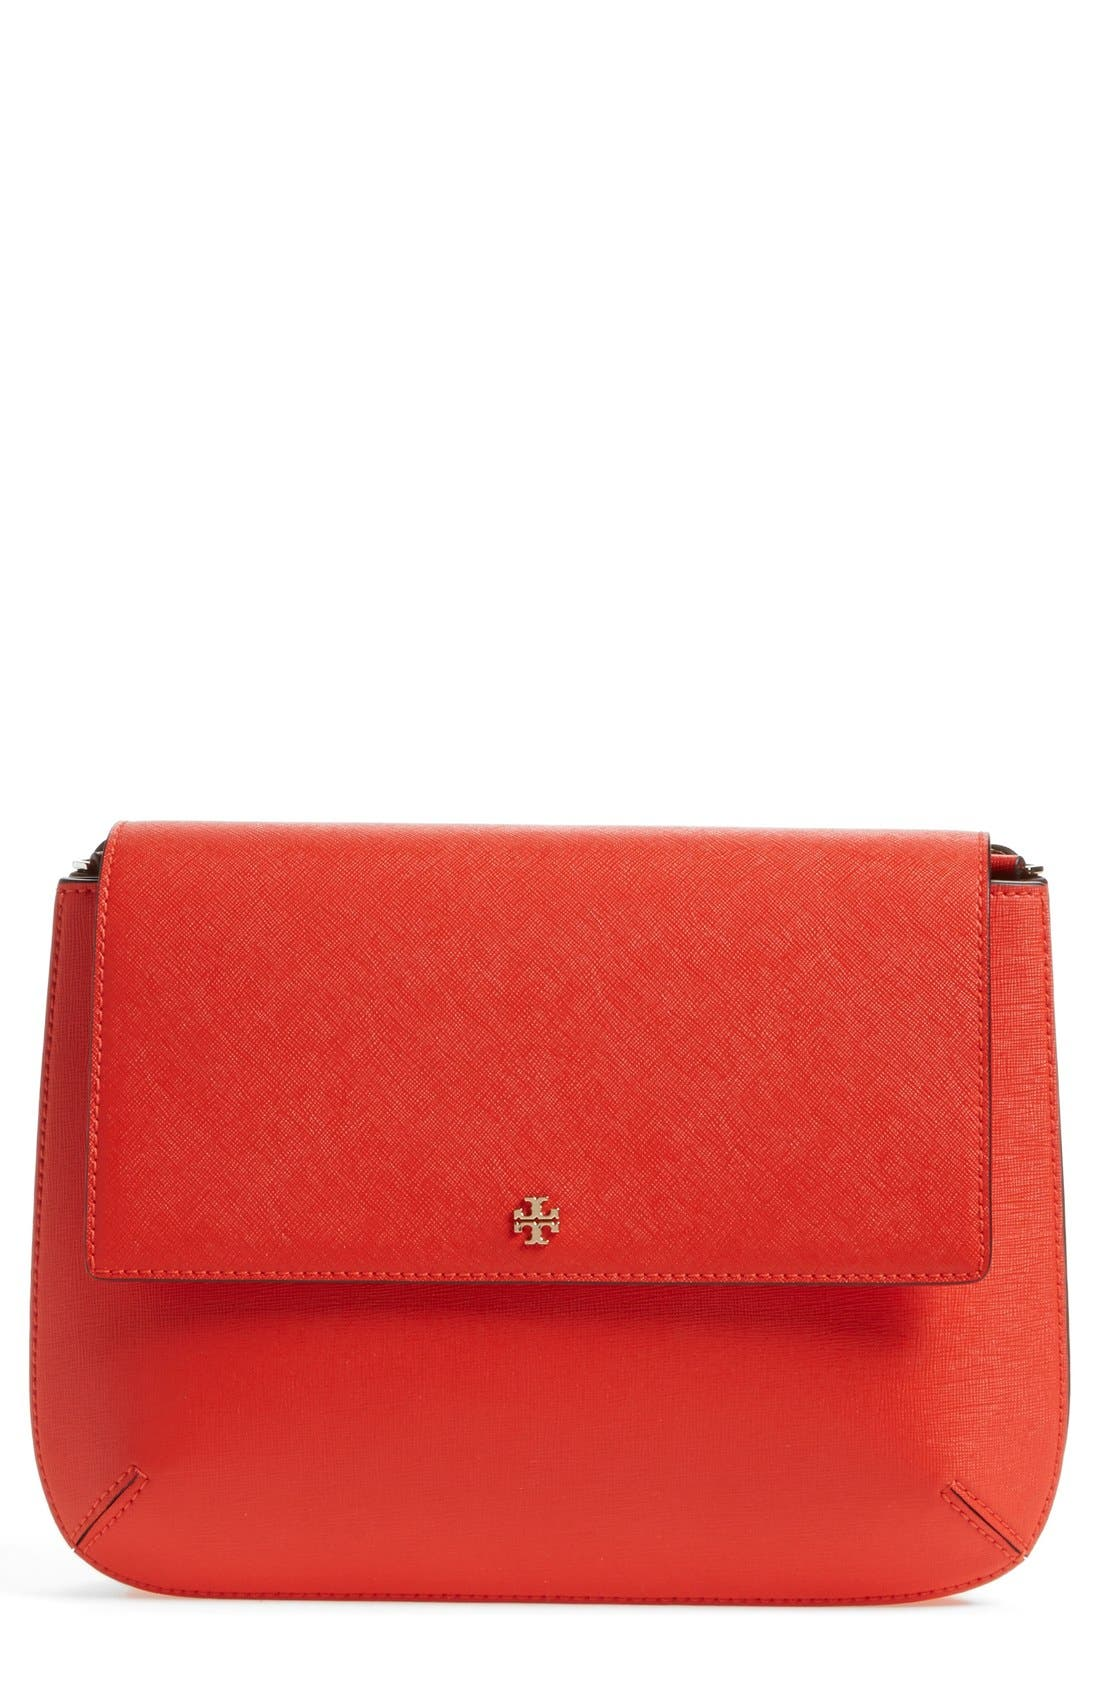 Alternate Image 1 Selected - Tory Burch 'Robinson' Crossbody Bag